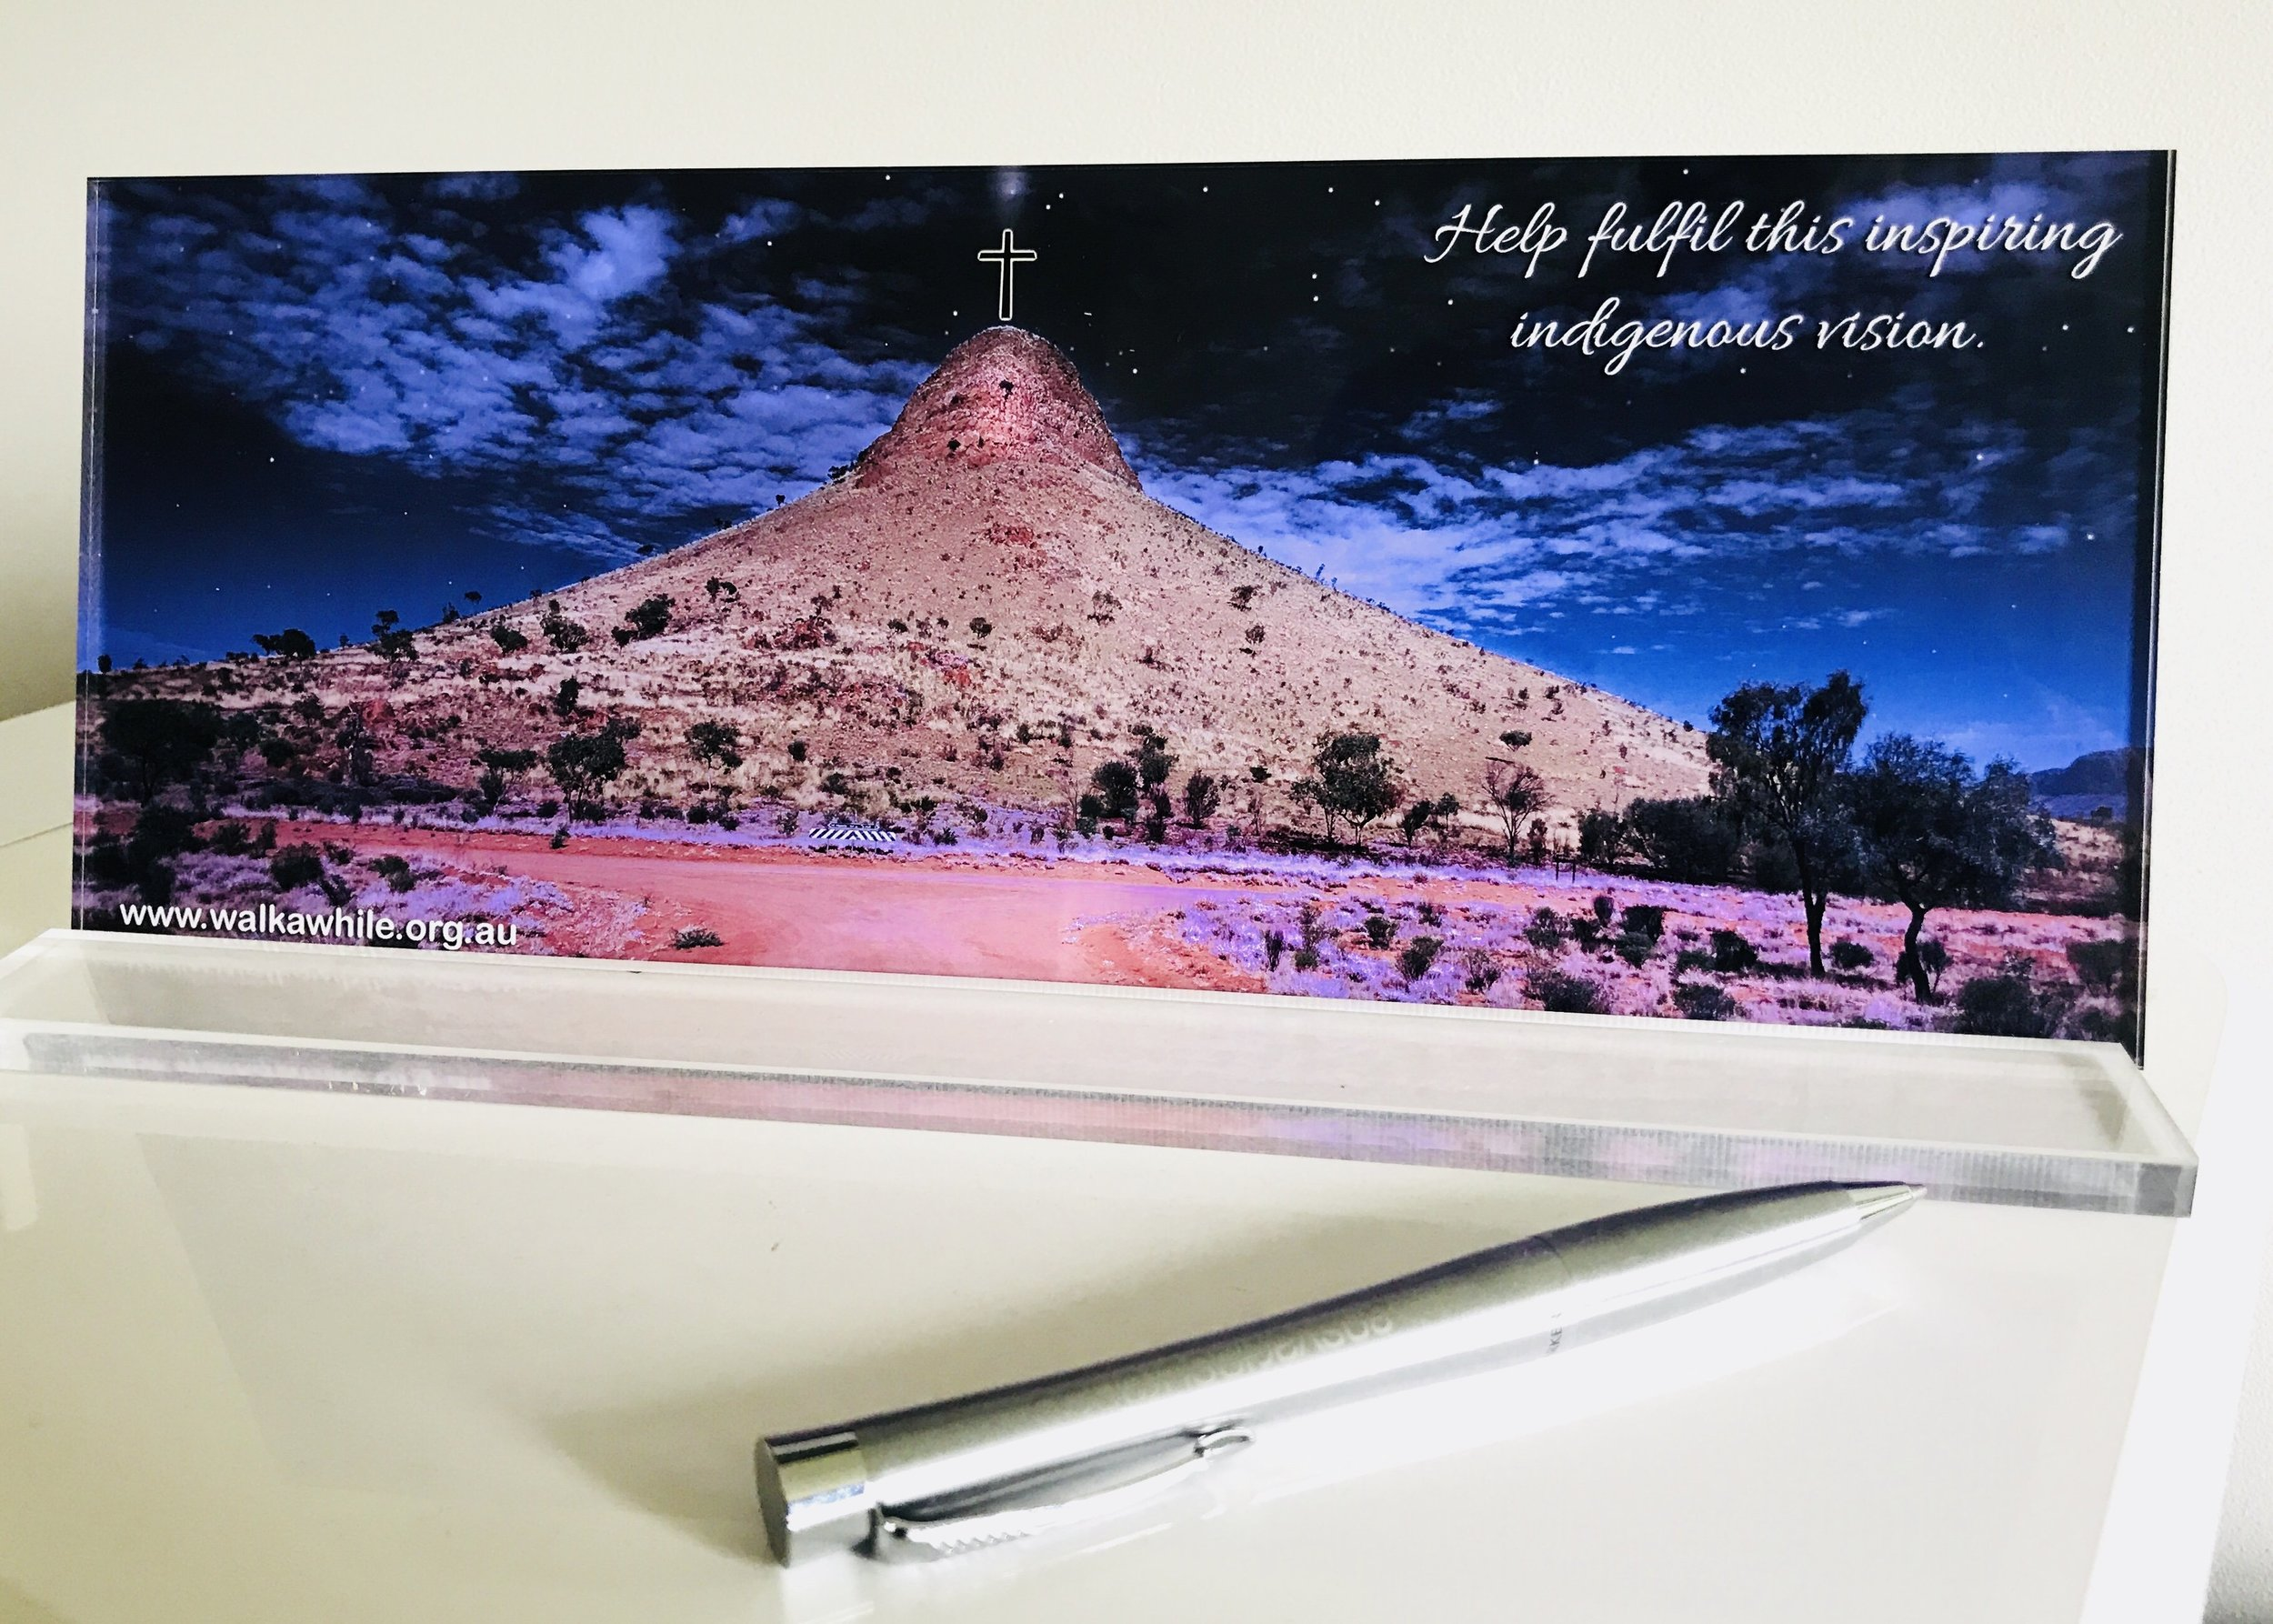 These are so good for any desk top and great reminder of this inspiring project ...